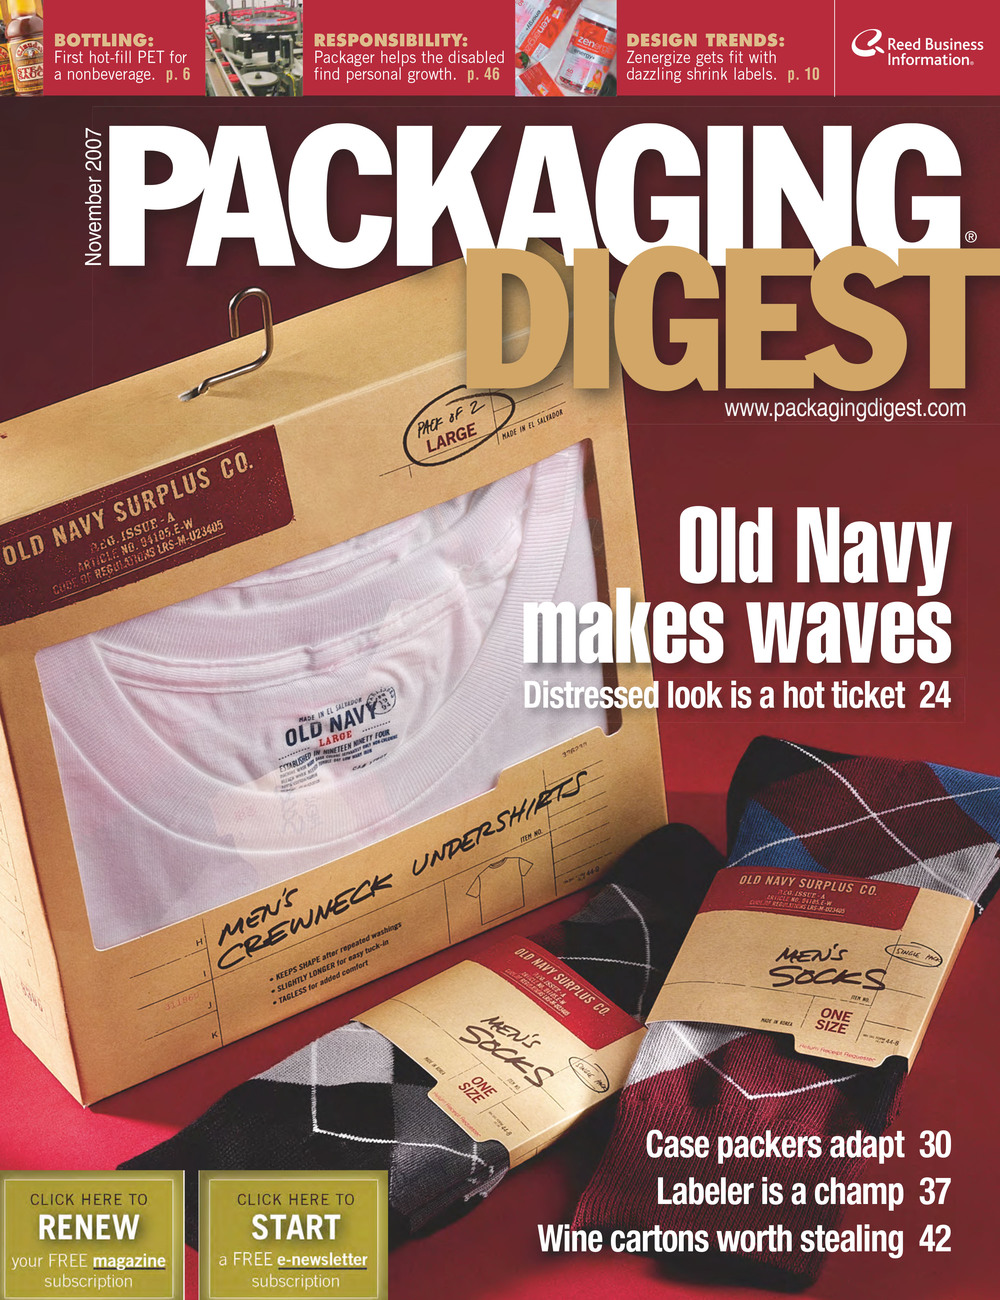 Packaging Digest Article Nov 2007sm-1.jpg